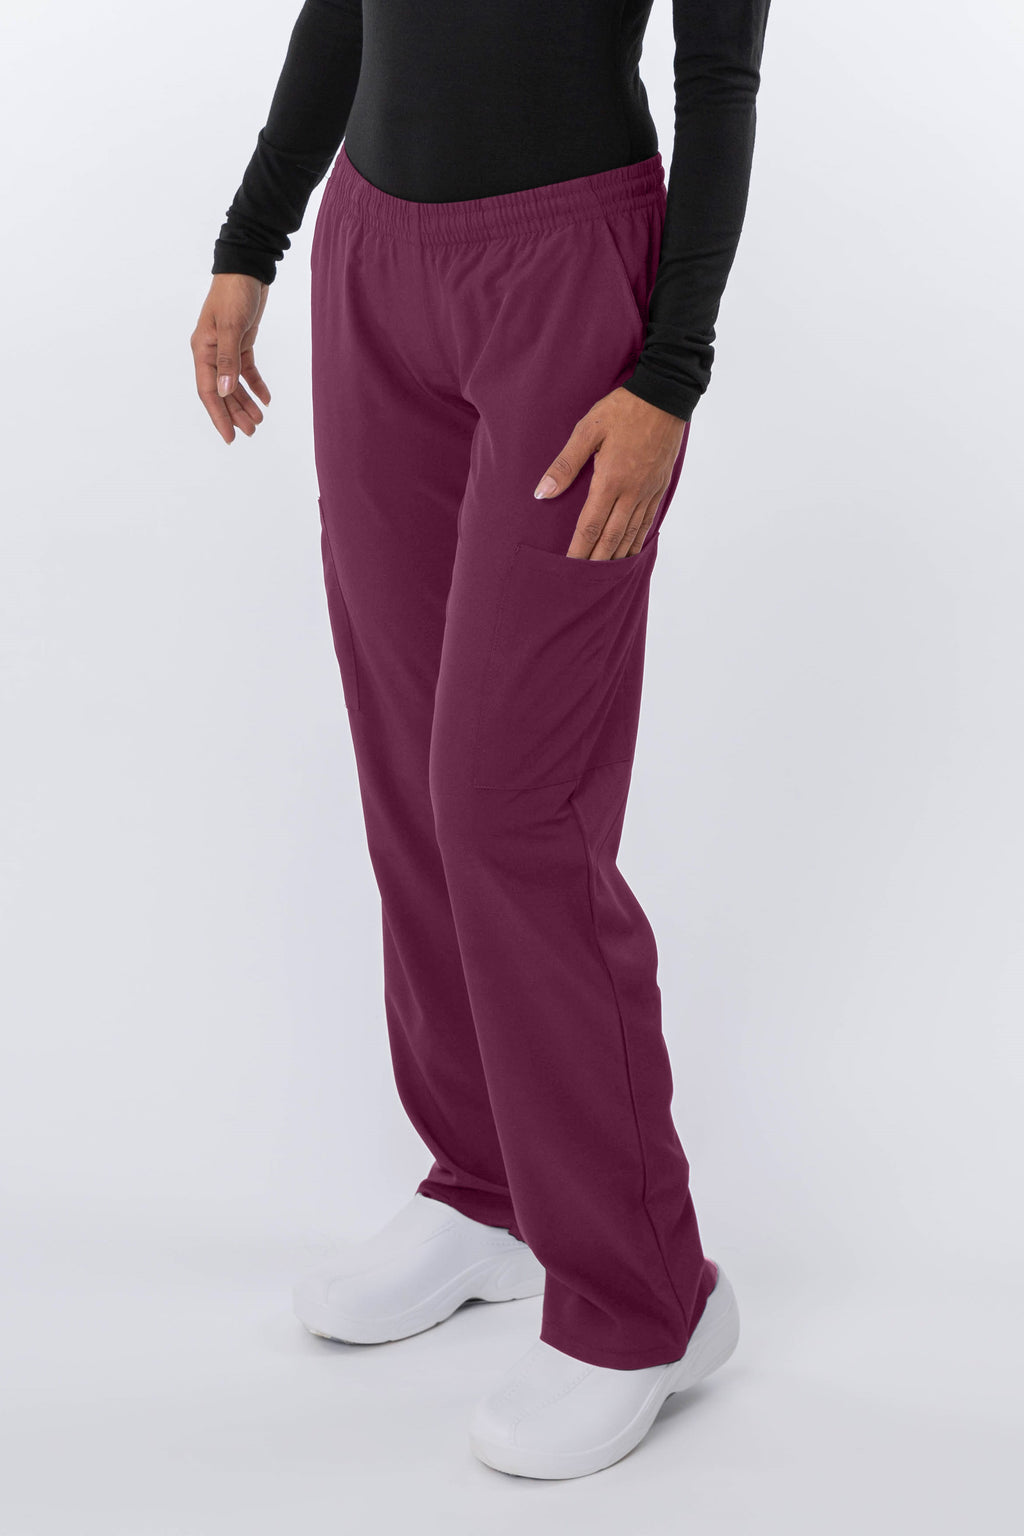 18-1042 Ladies Zinnia Full Elastic Cargo Pant By Greentown - Scrub Nation Canada